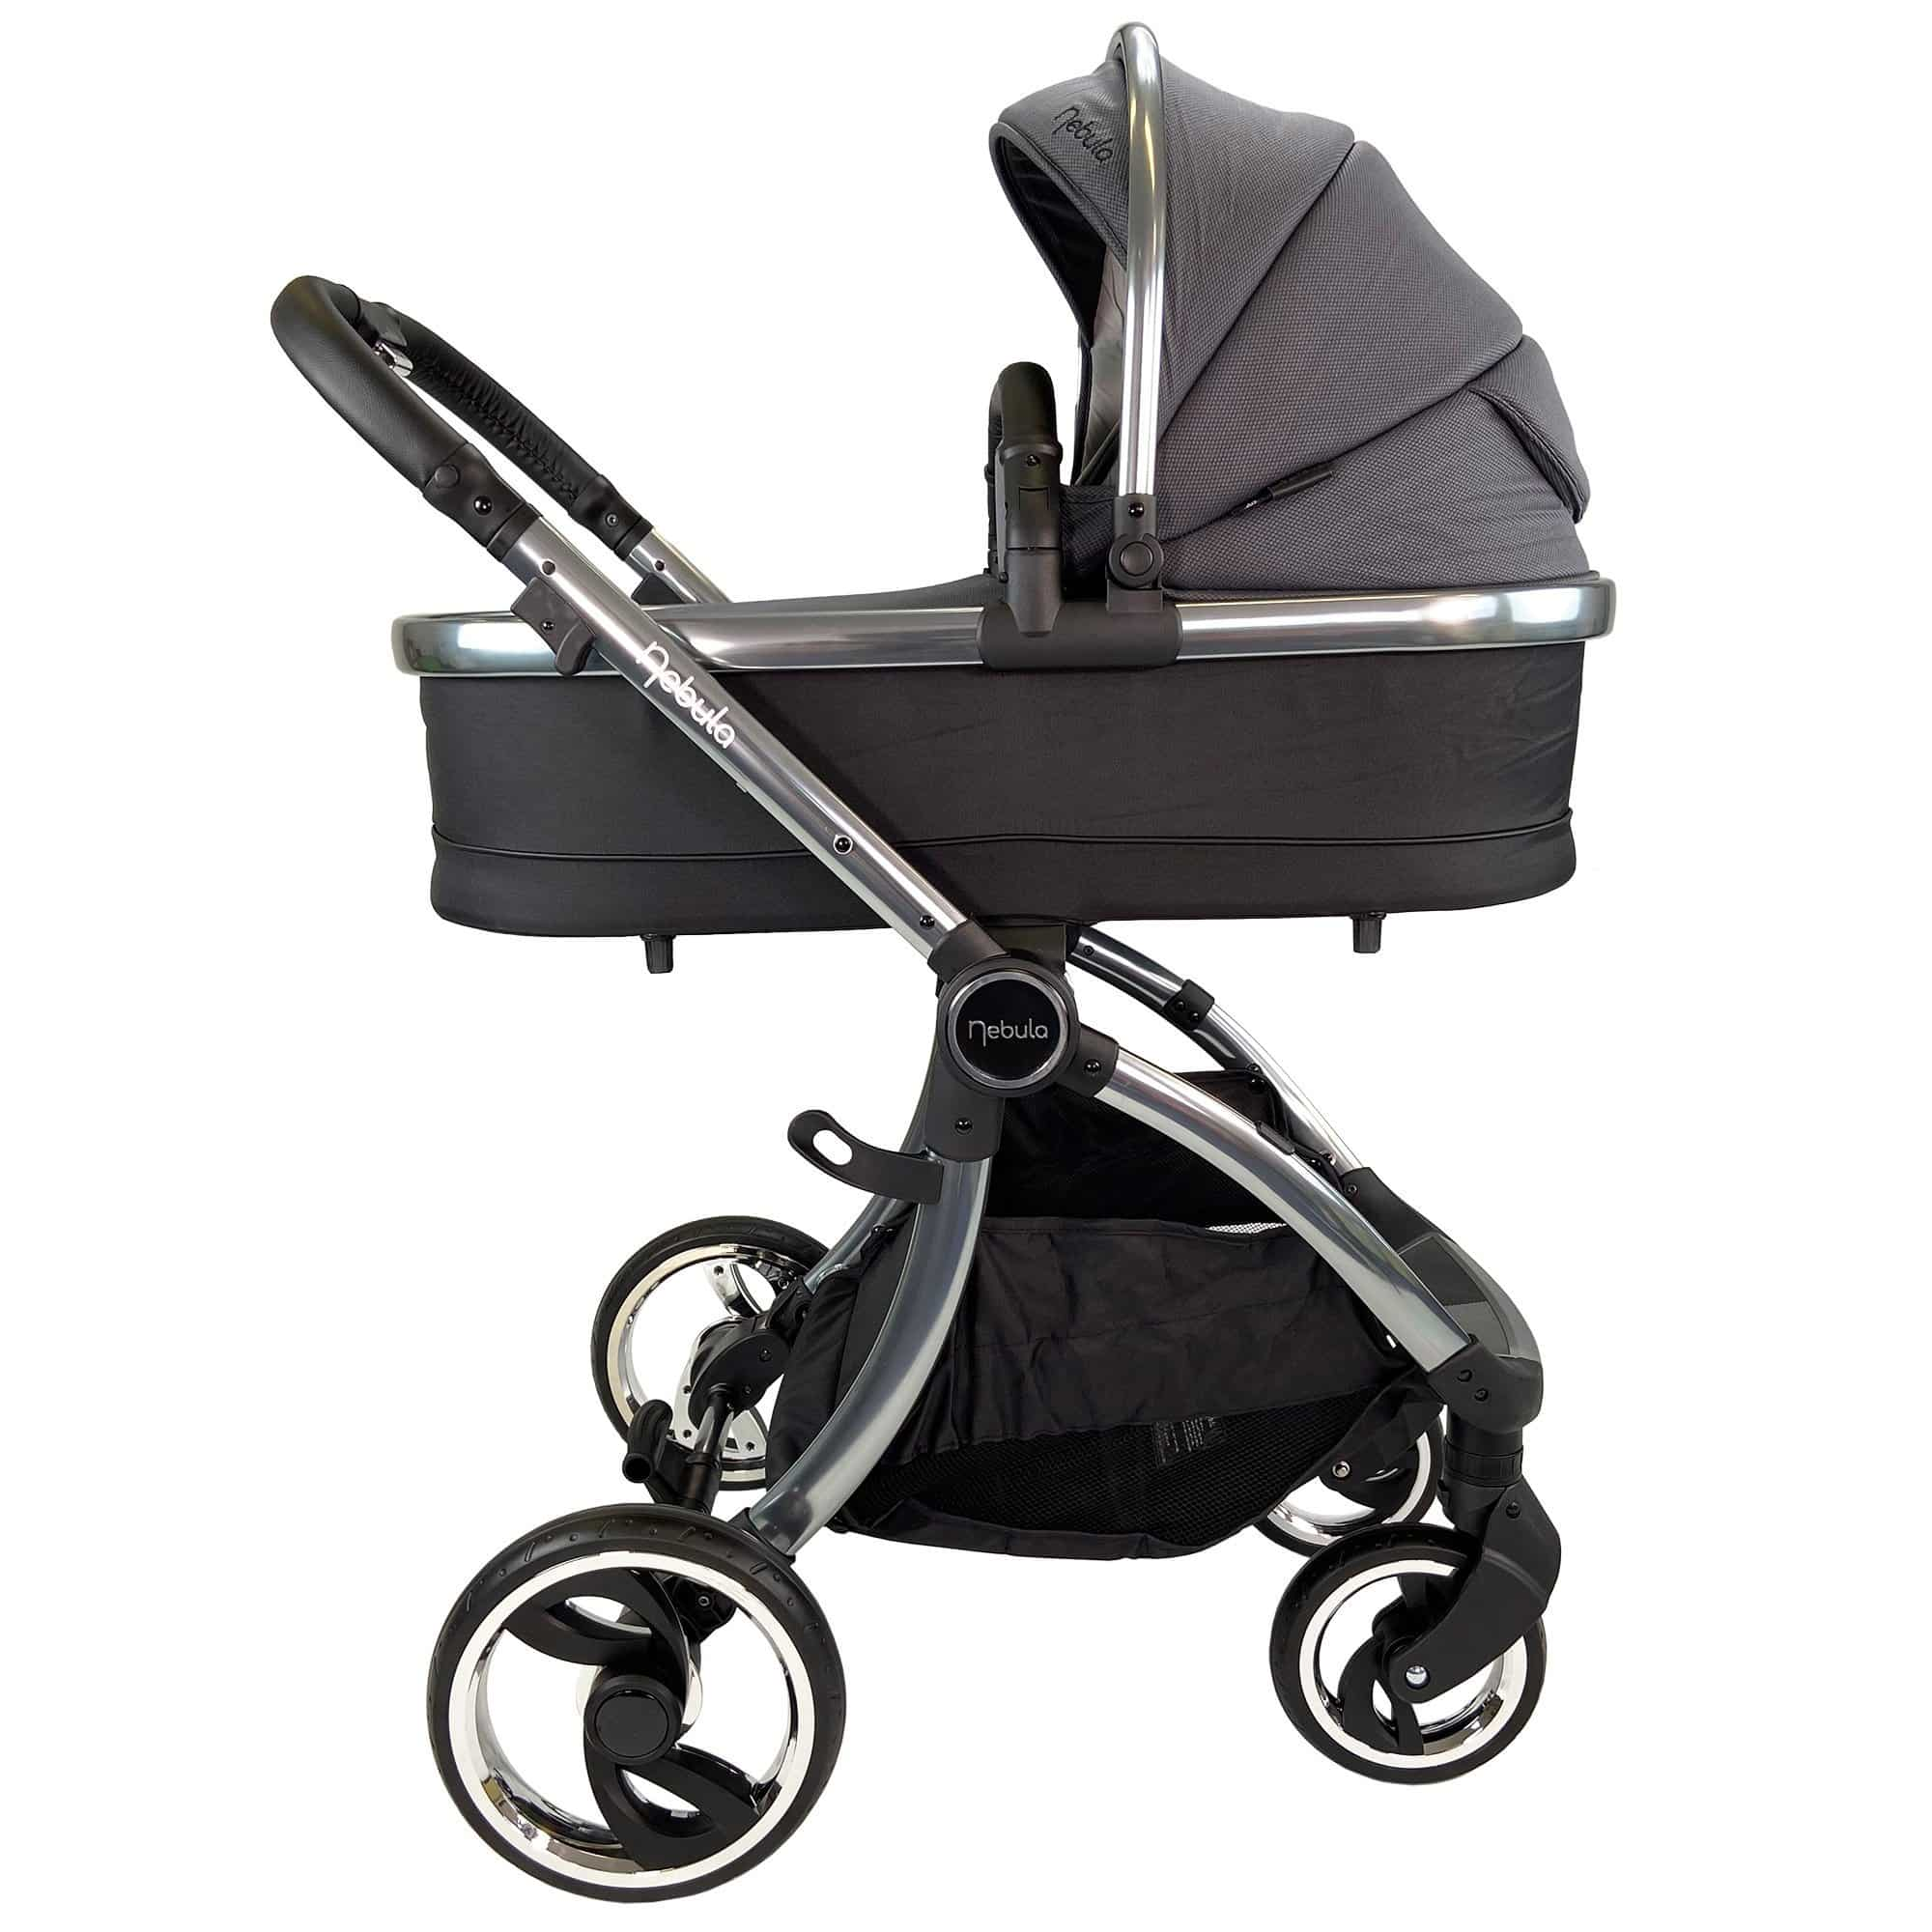 Venture Nebula Metro Grey baby stroller with matching carry cot